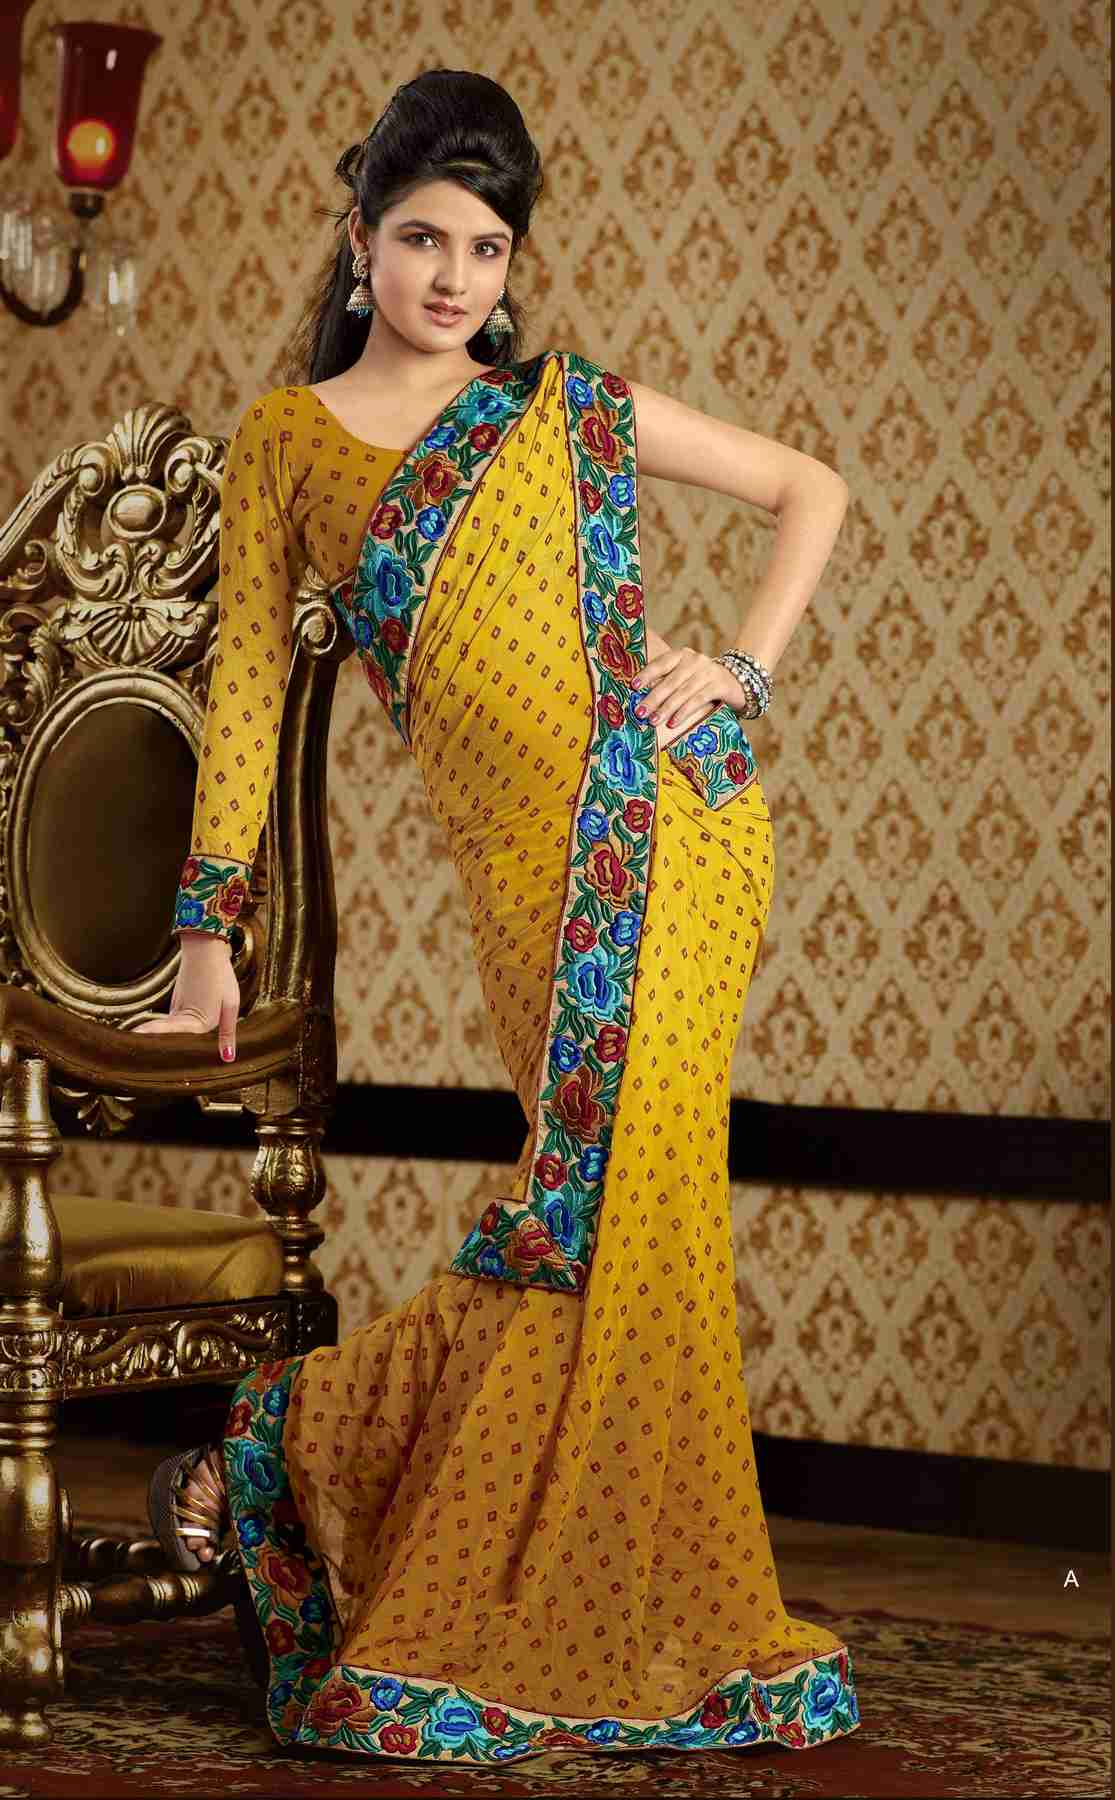 Indian Selections Chaitali Yellow Faux Crepe Luxury Party Wear Sari saree at Sears.com